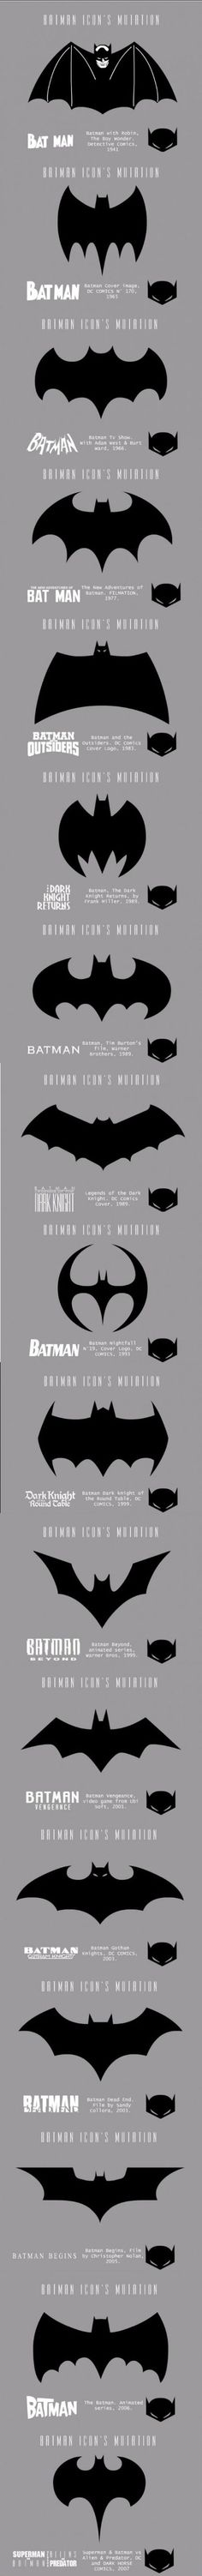 The Evolution Of The Bat symbol.